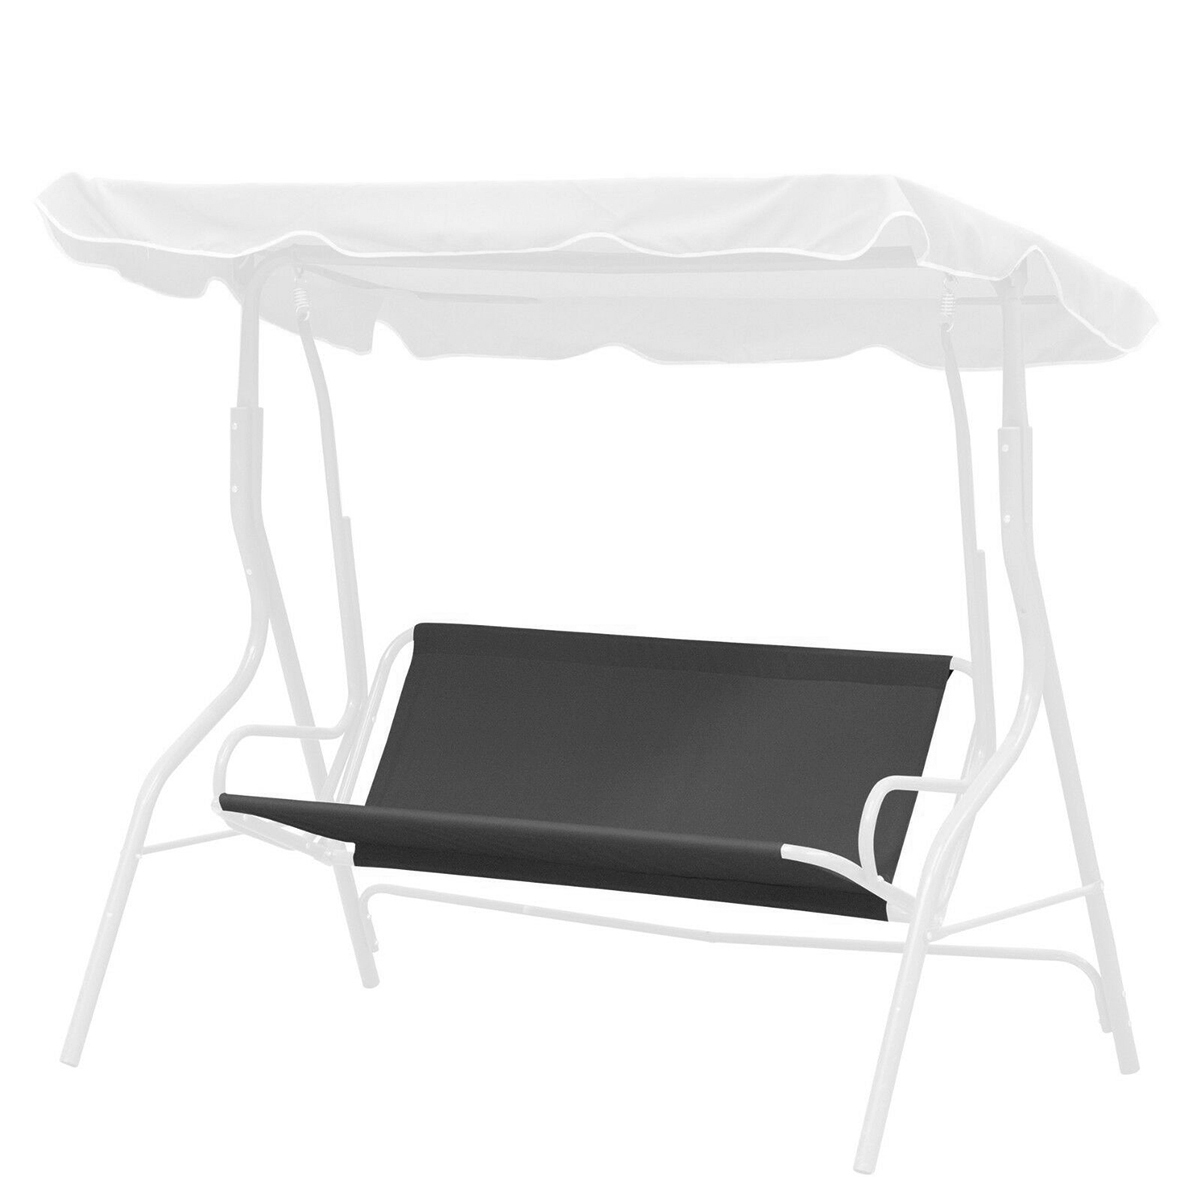 Polyester 3 People Swing Seat Cover Waterproof Uv-Proof Replacement Chair Cushion Patio Garden